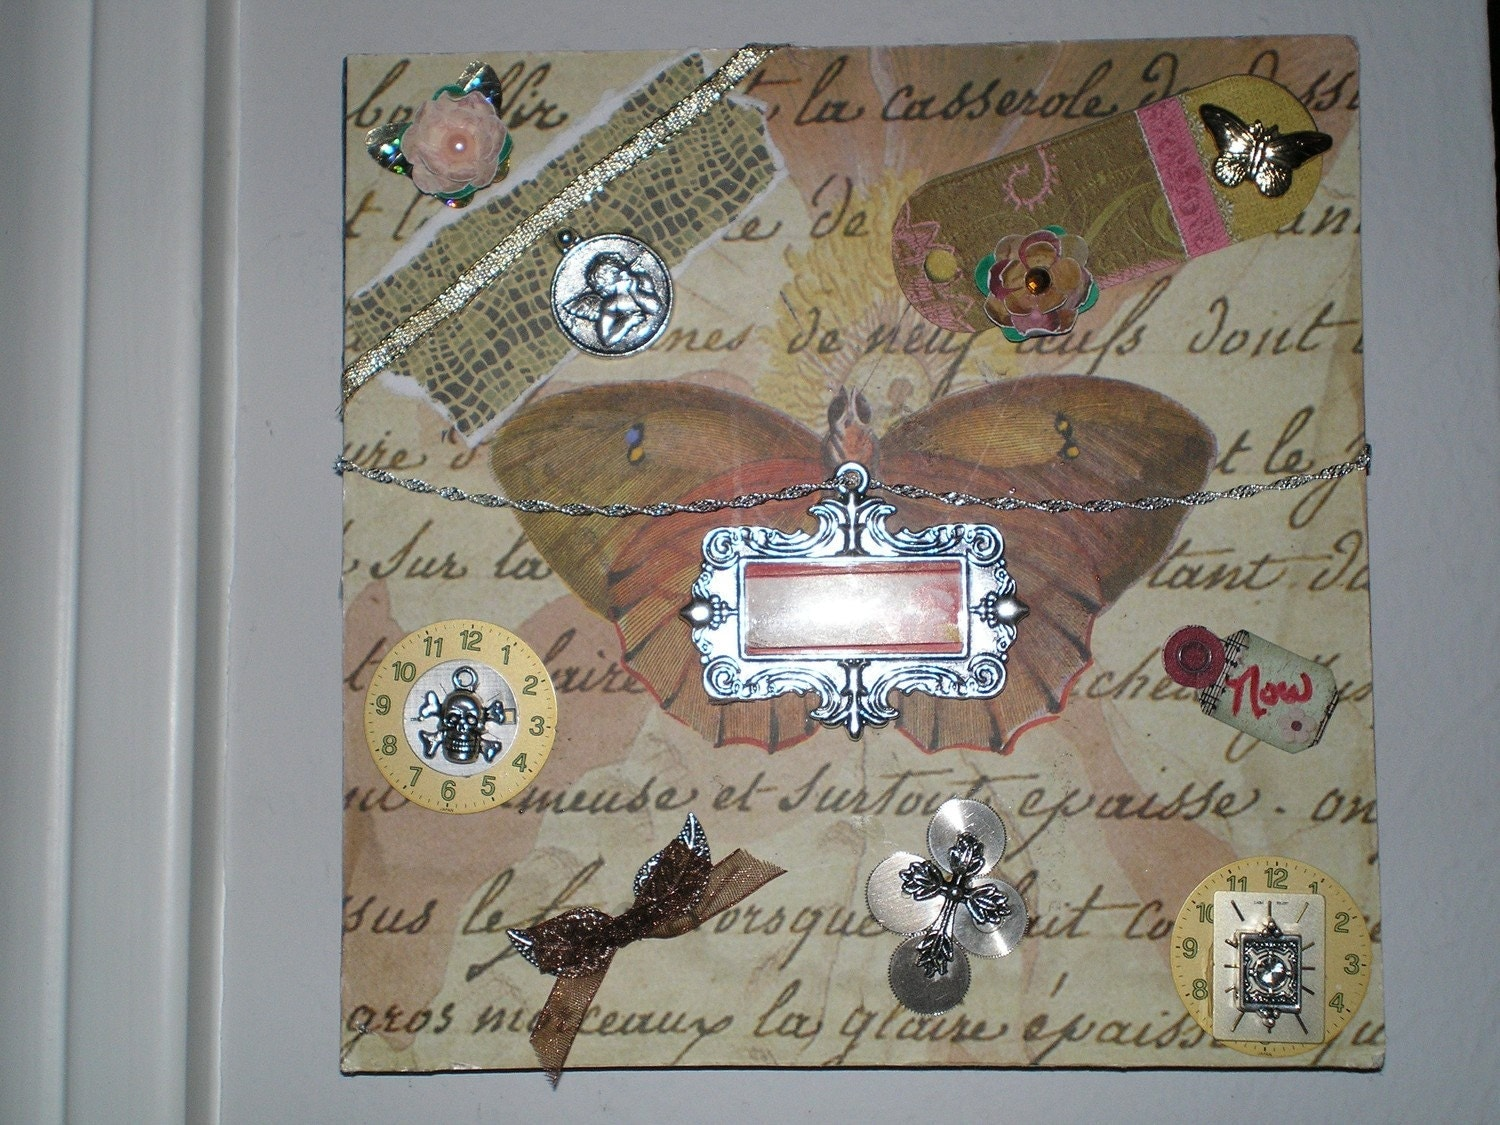 She Dreams of Flight 4 - Part 4 in my 4-part series of OOAK Signed Altered Art Collage Mixed Media Plaques with Jewelry Butterflies Dragonflies Skulls Paper Flowers Heart Watch Parts Chains